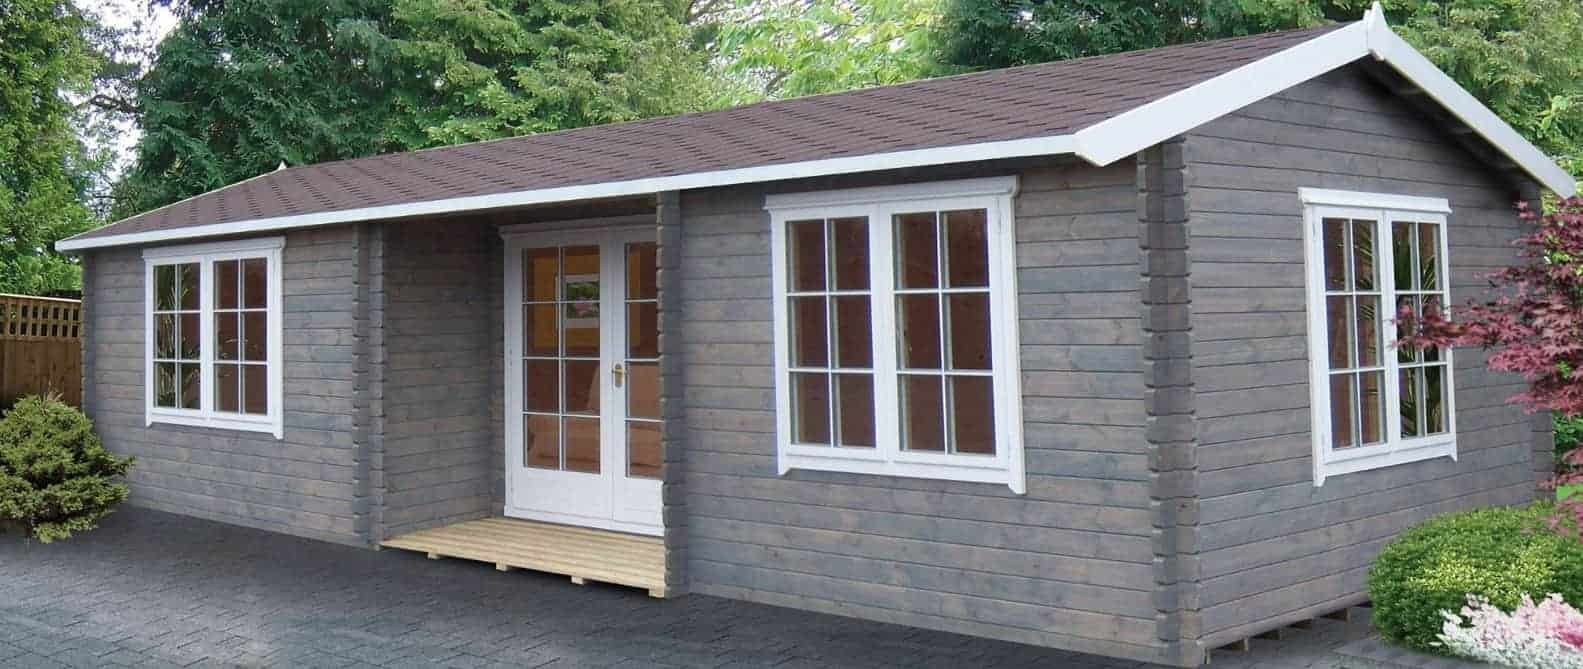 Palmako Sandra 7.5m x 4.8m Log Cabin Summerhouse (44mm)